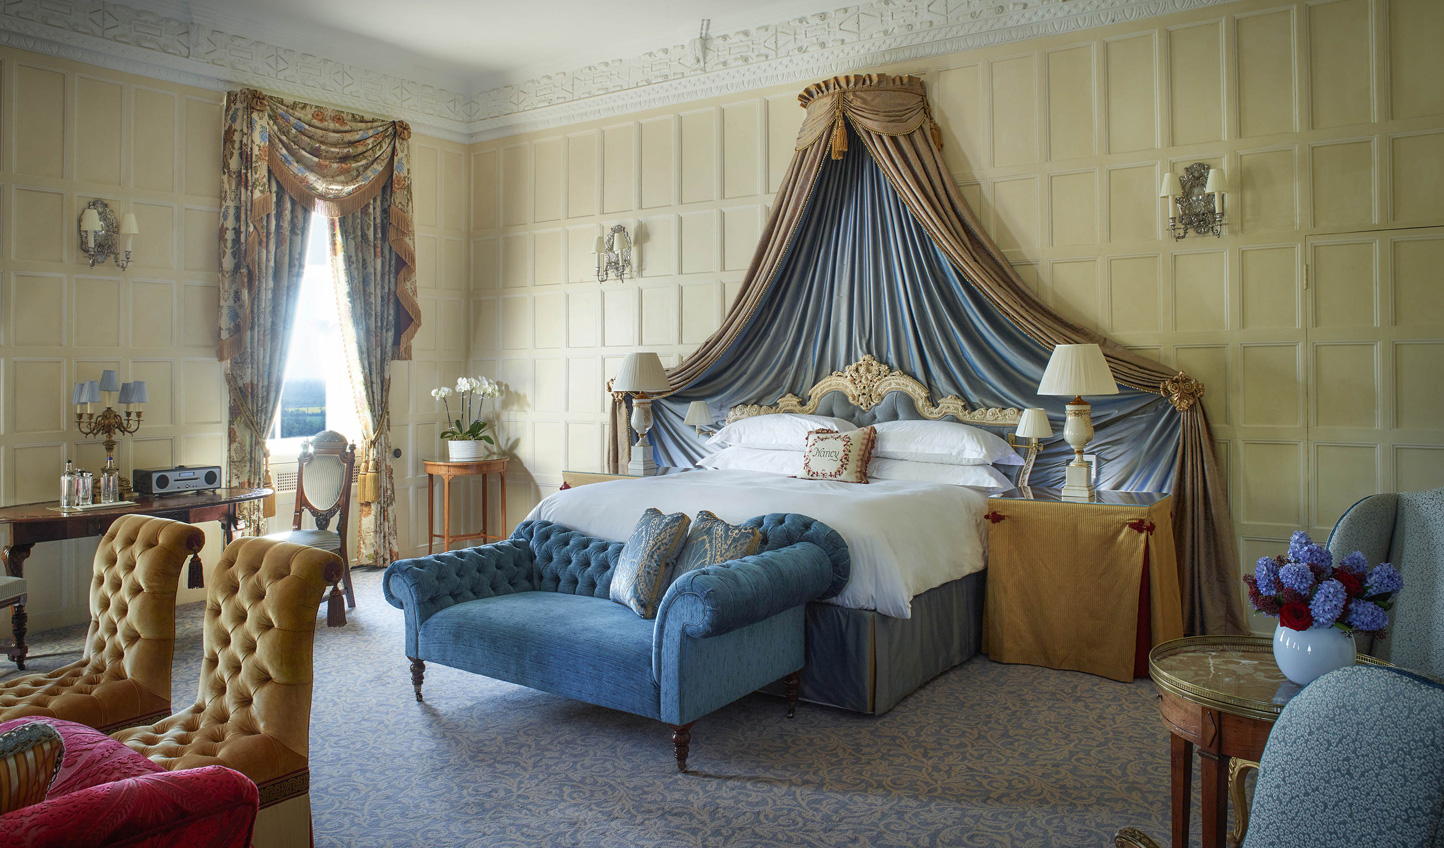 You will surely feel like royalty in this lavish room